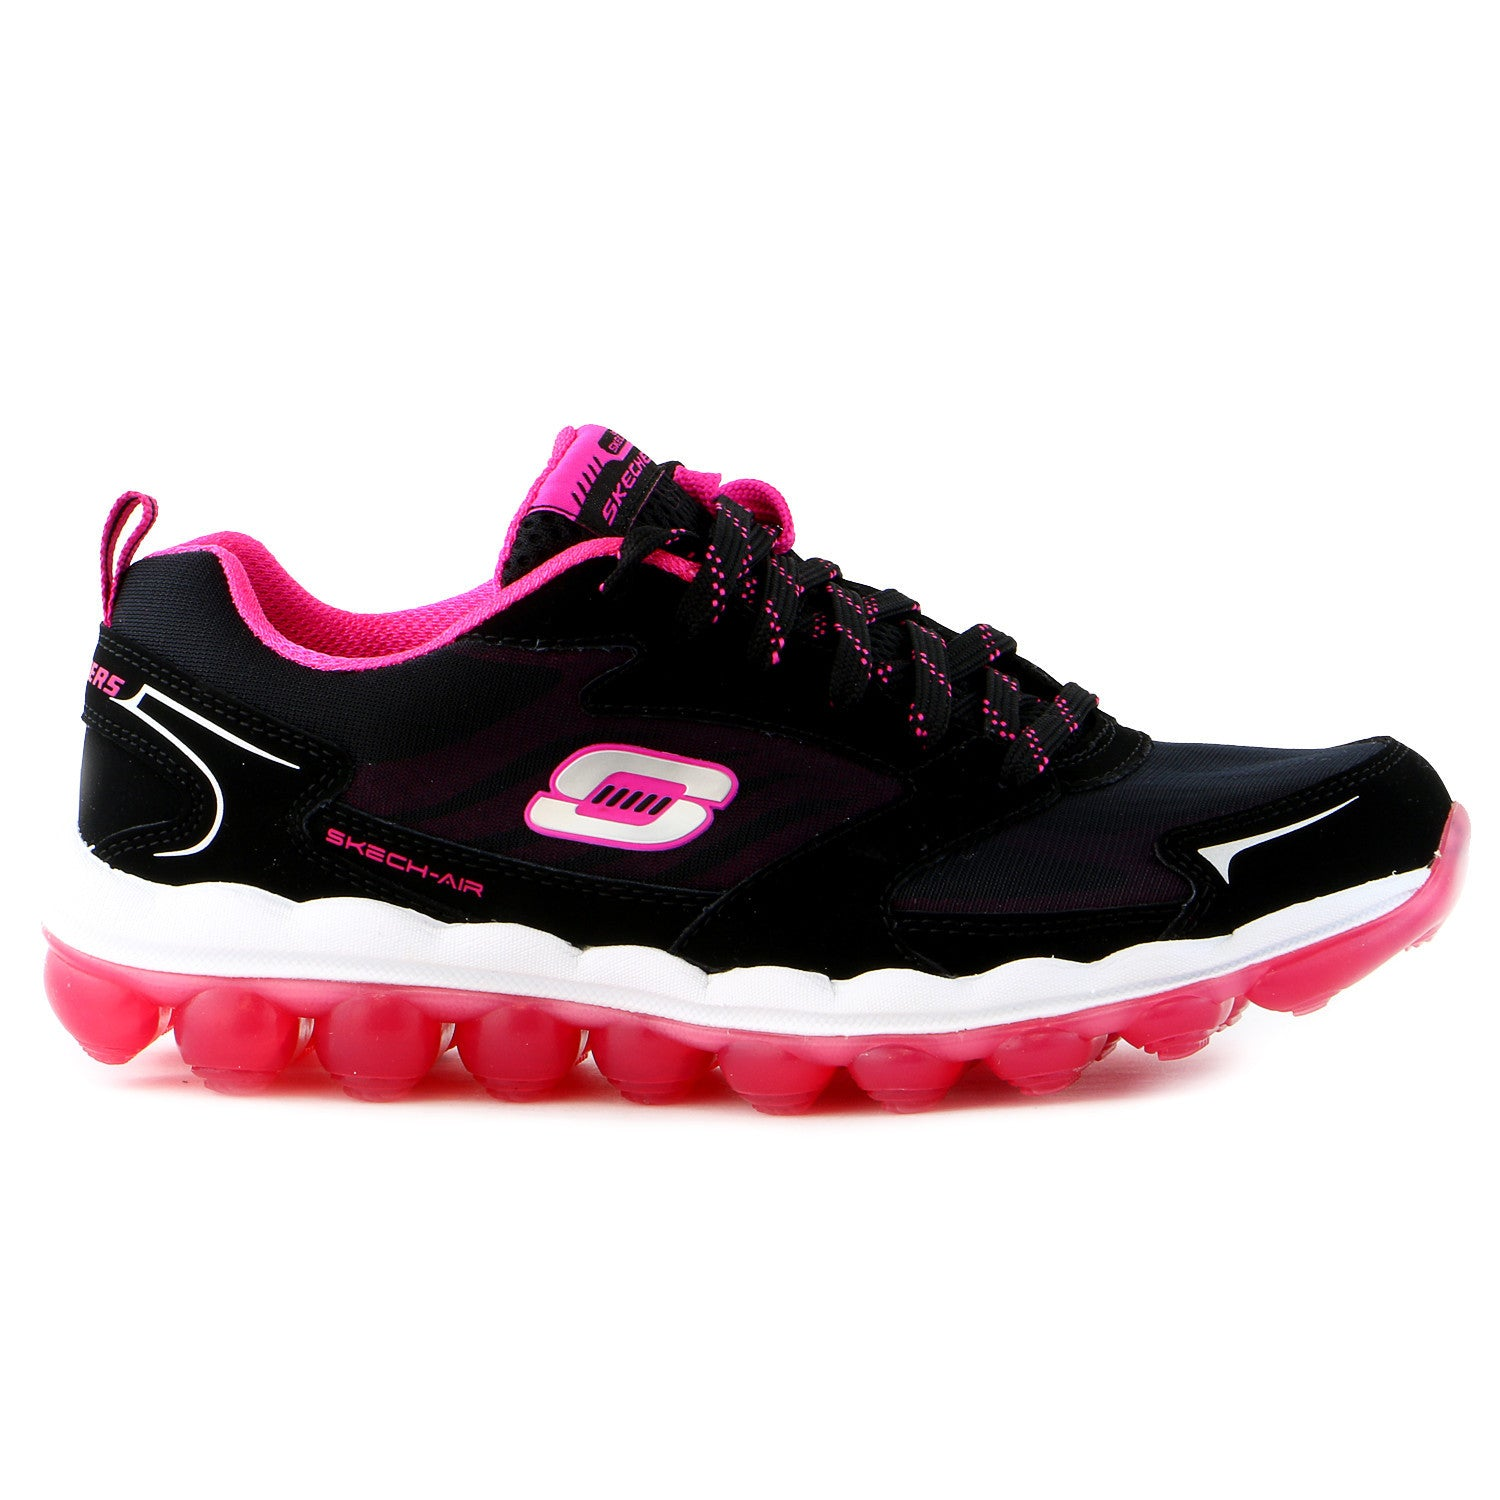 718a5bfc6fa1 Skechers Sport Skech Air Cross Trainer Sneaker Shoe - Black Hot Pink - -  Shoplifestyle